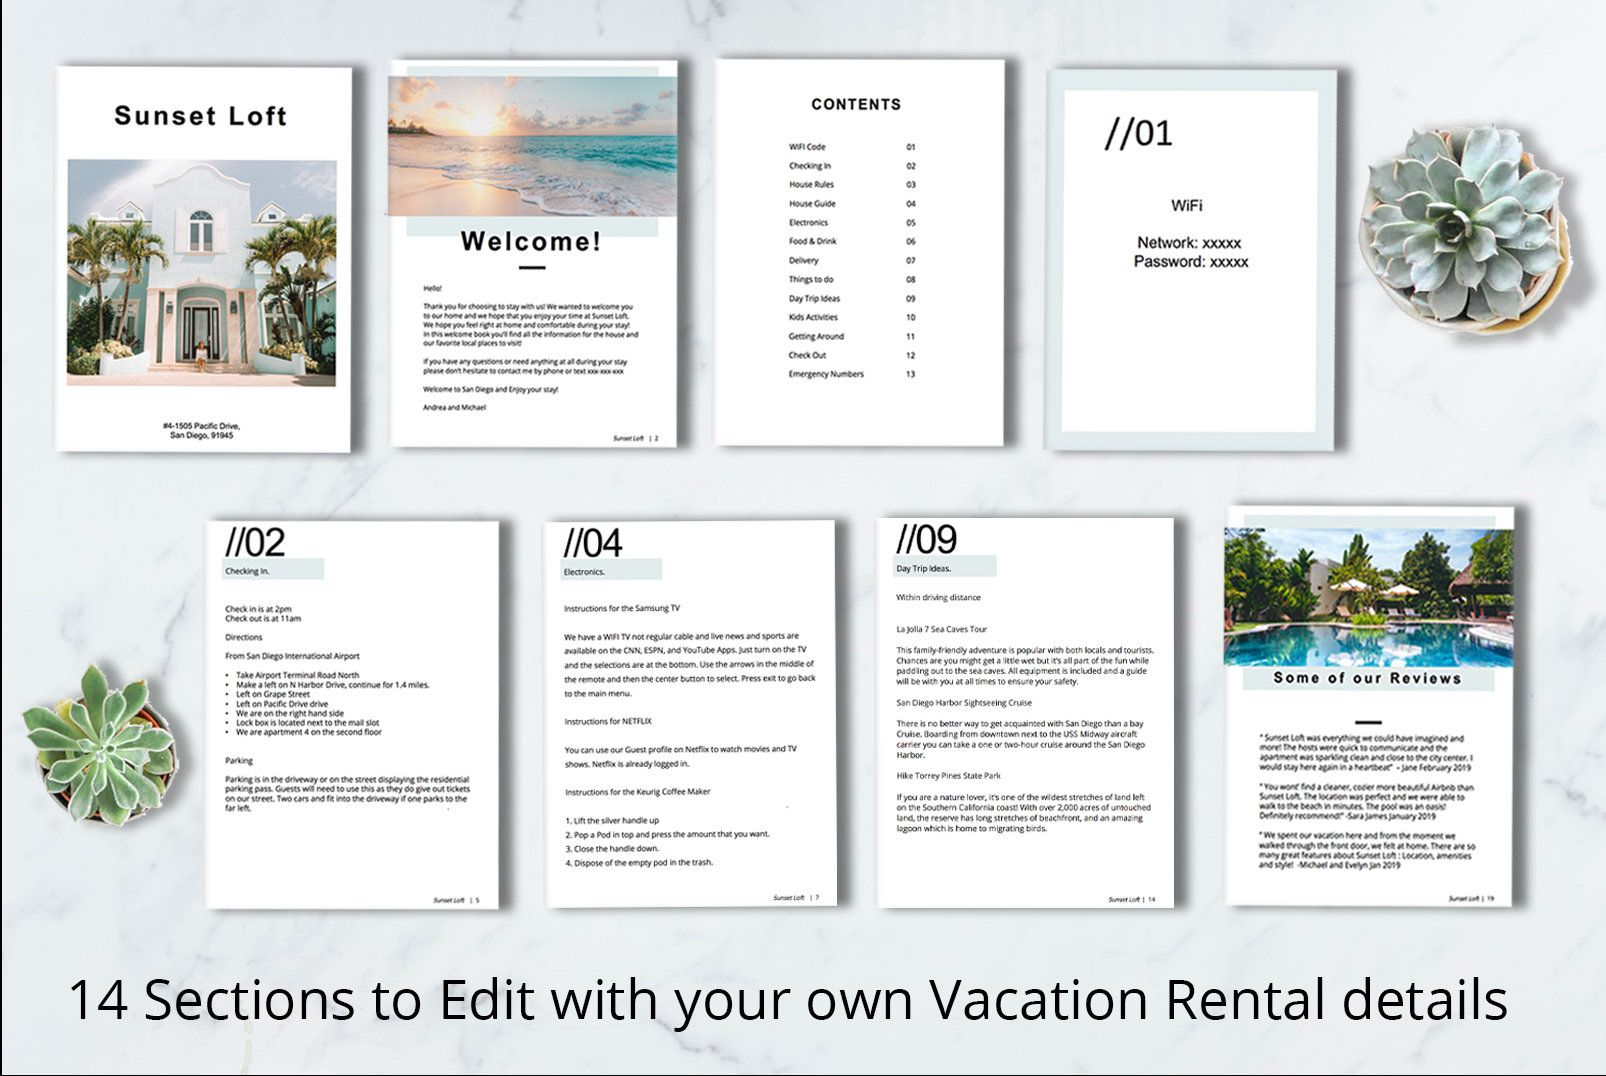 Guest Book Vacation Rental Airbnb House Guide